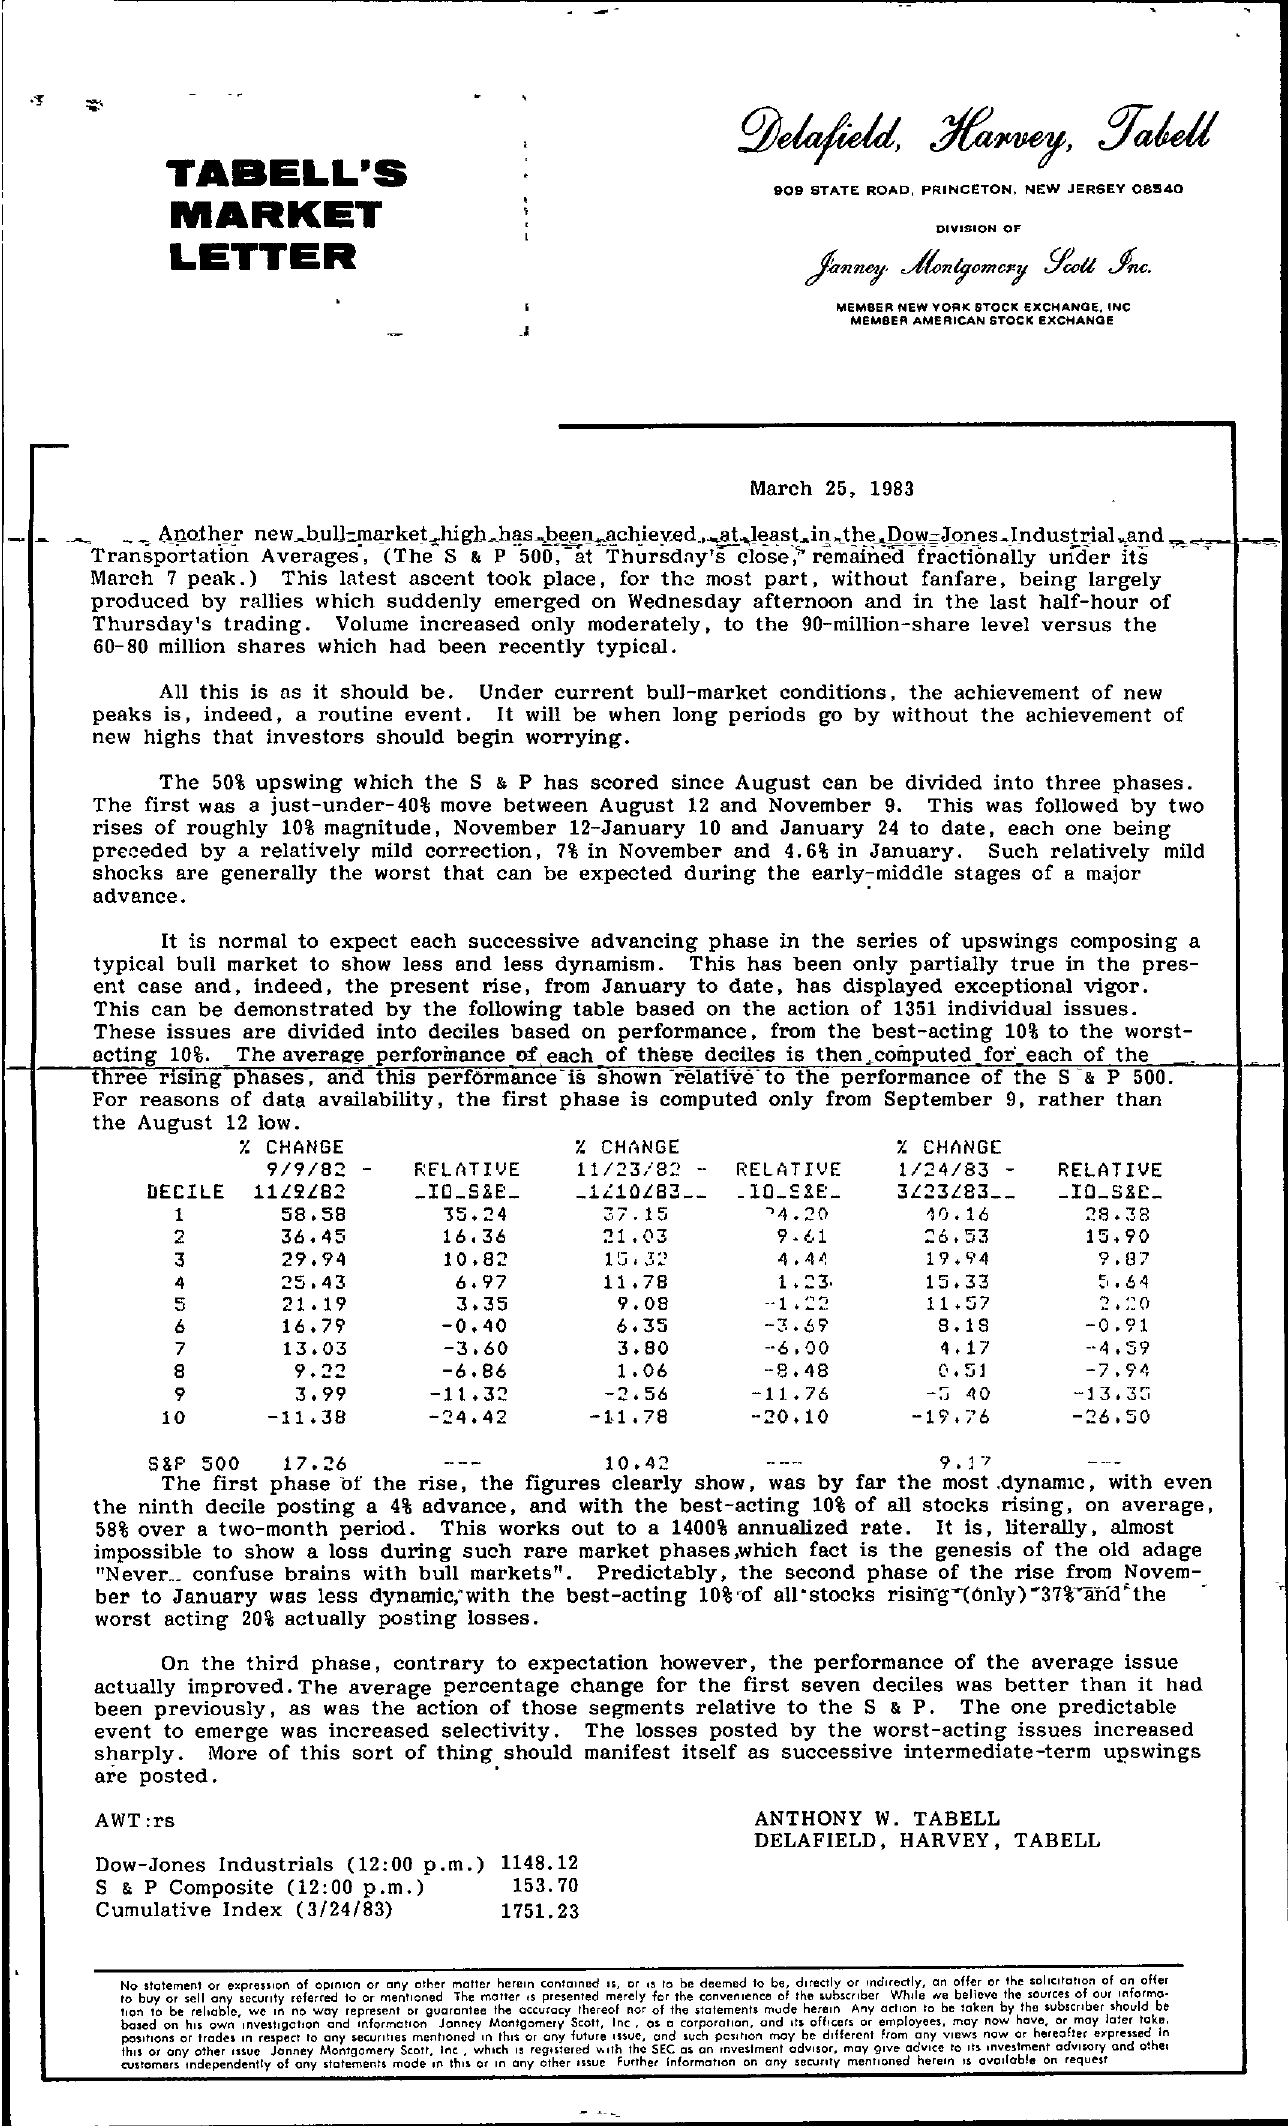 Tabell's Market Letter - March 25, 1983